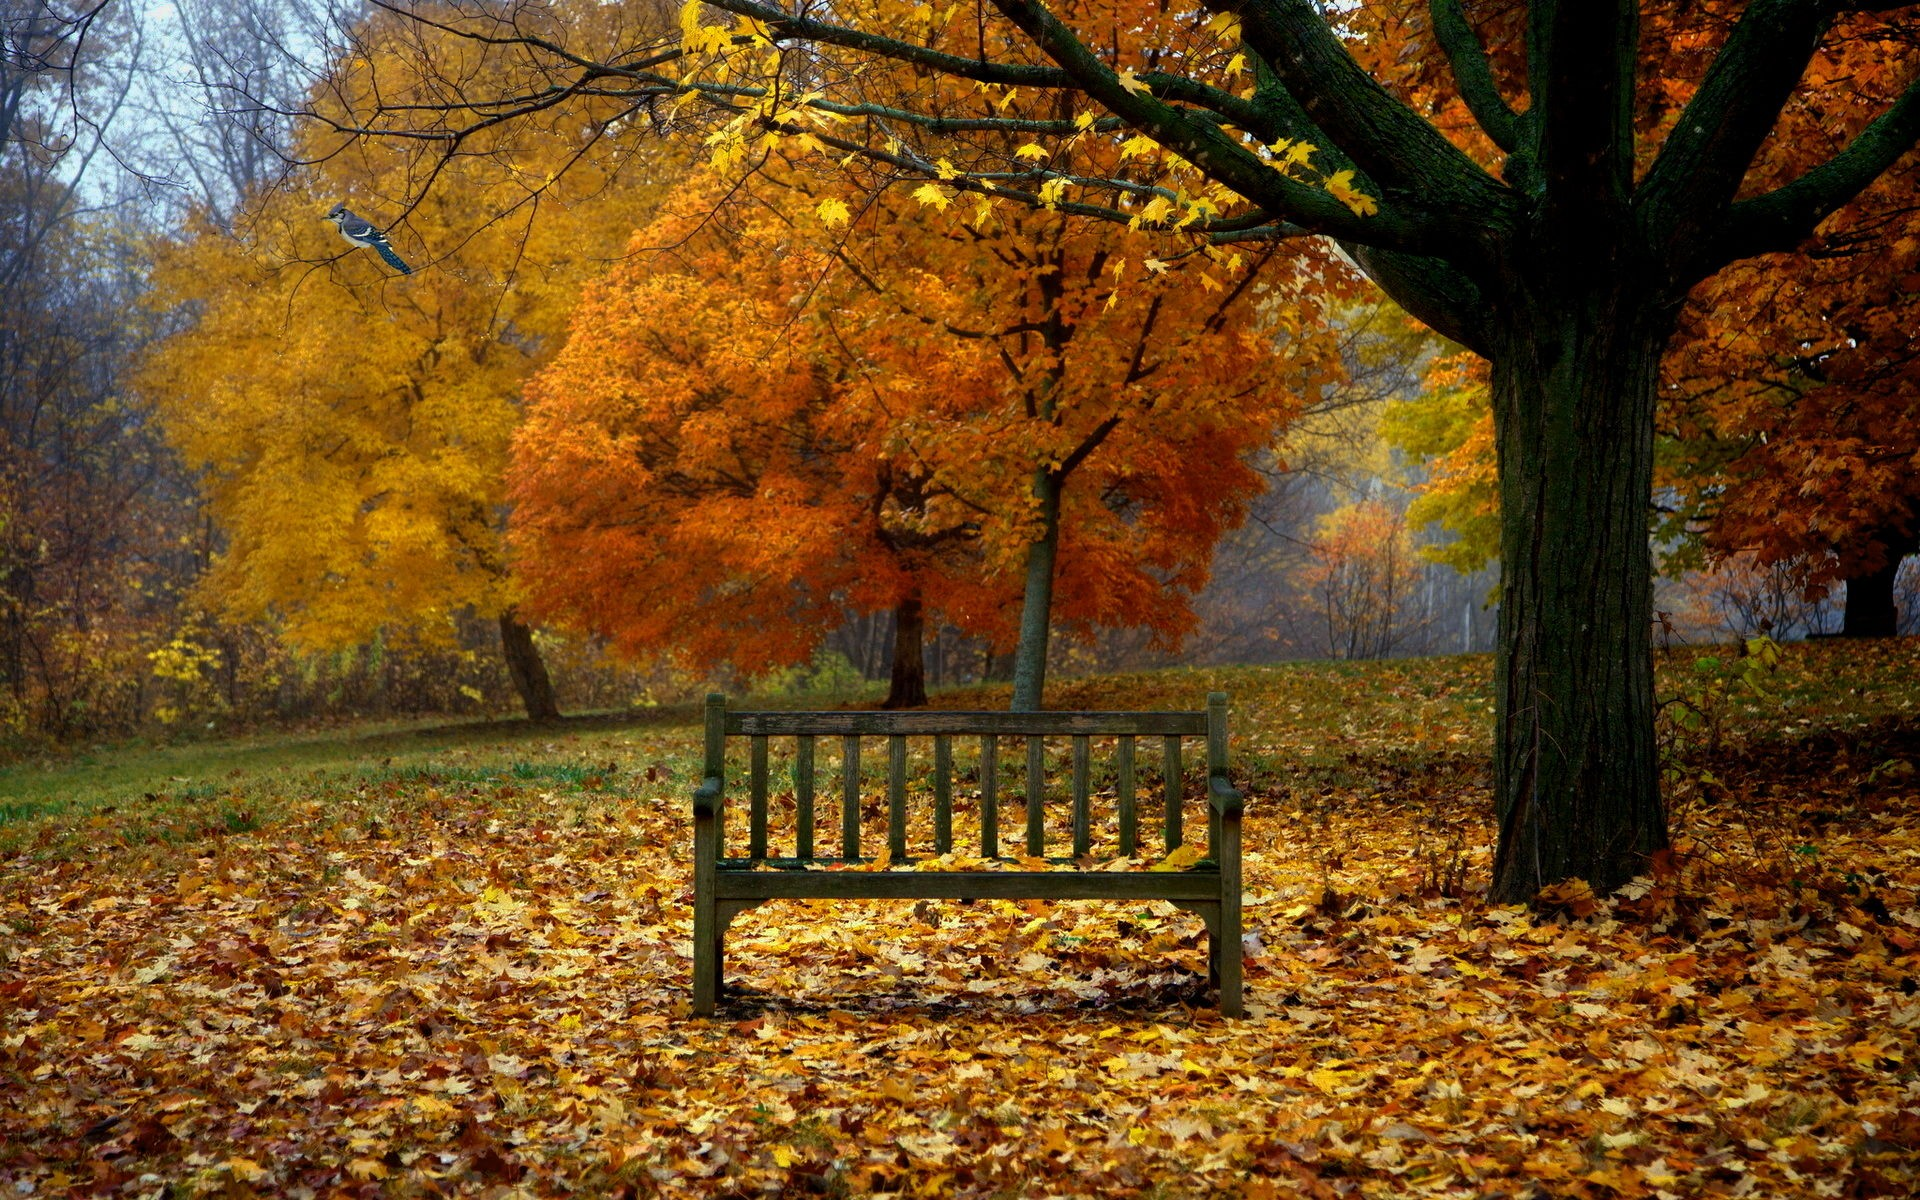 fall background images download free cool full hd backgrounds